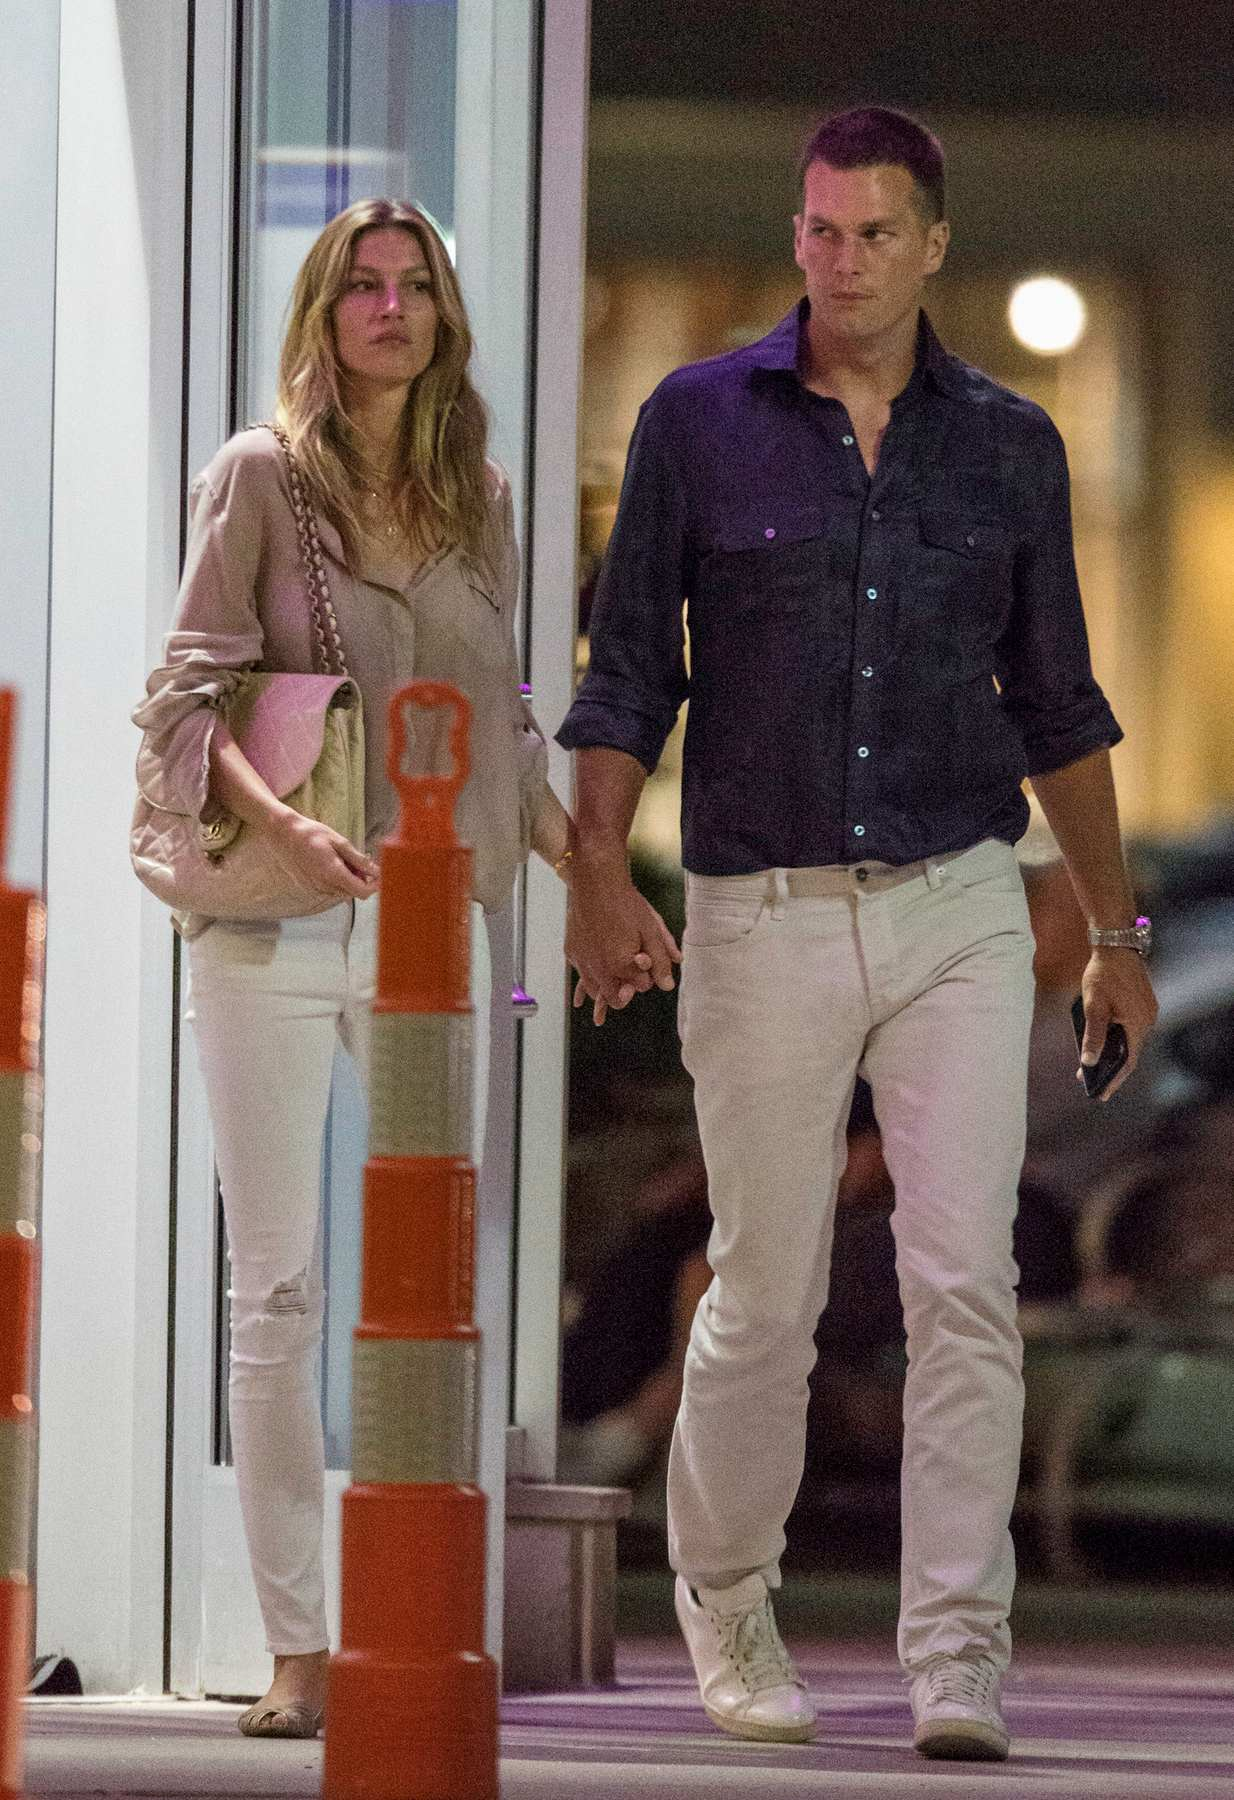 Gisele Bundchen and Tom Brady Hand in Hand Leaving Movie Theatre-4